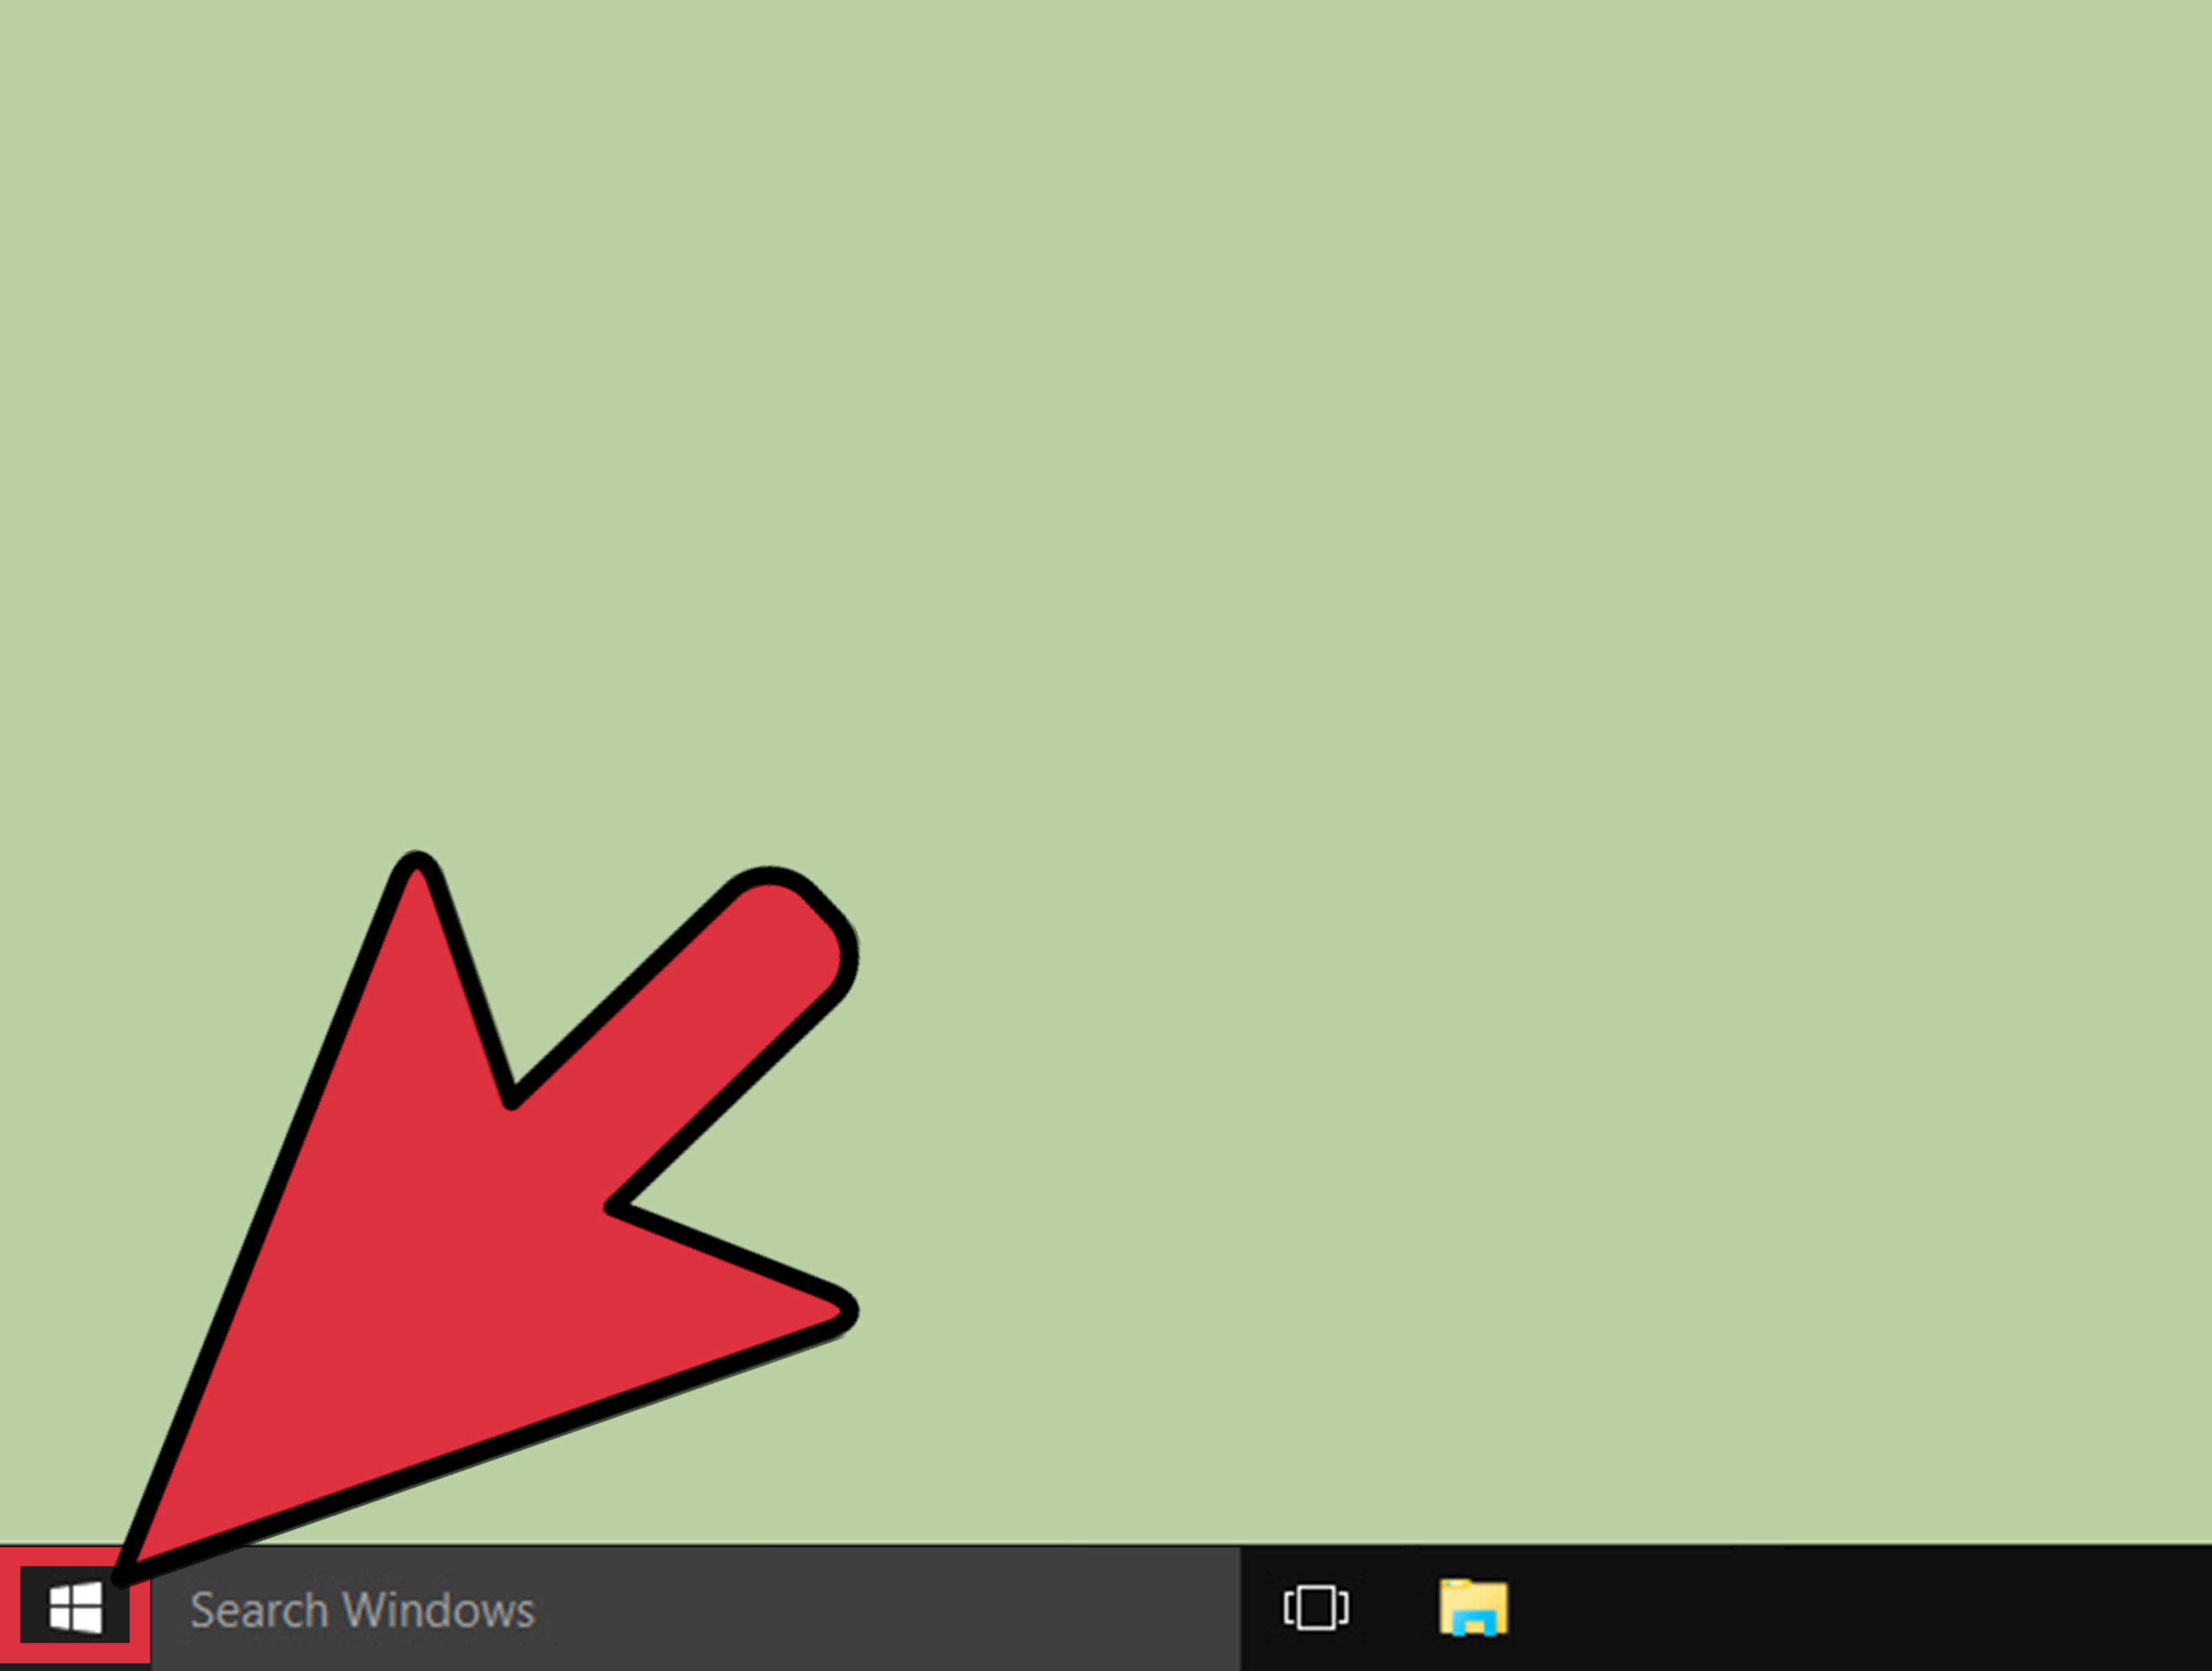 Enable Search Icon In Windows 10 Download Image How To Enable Cookies